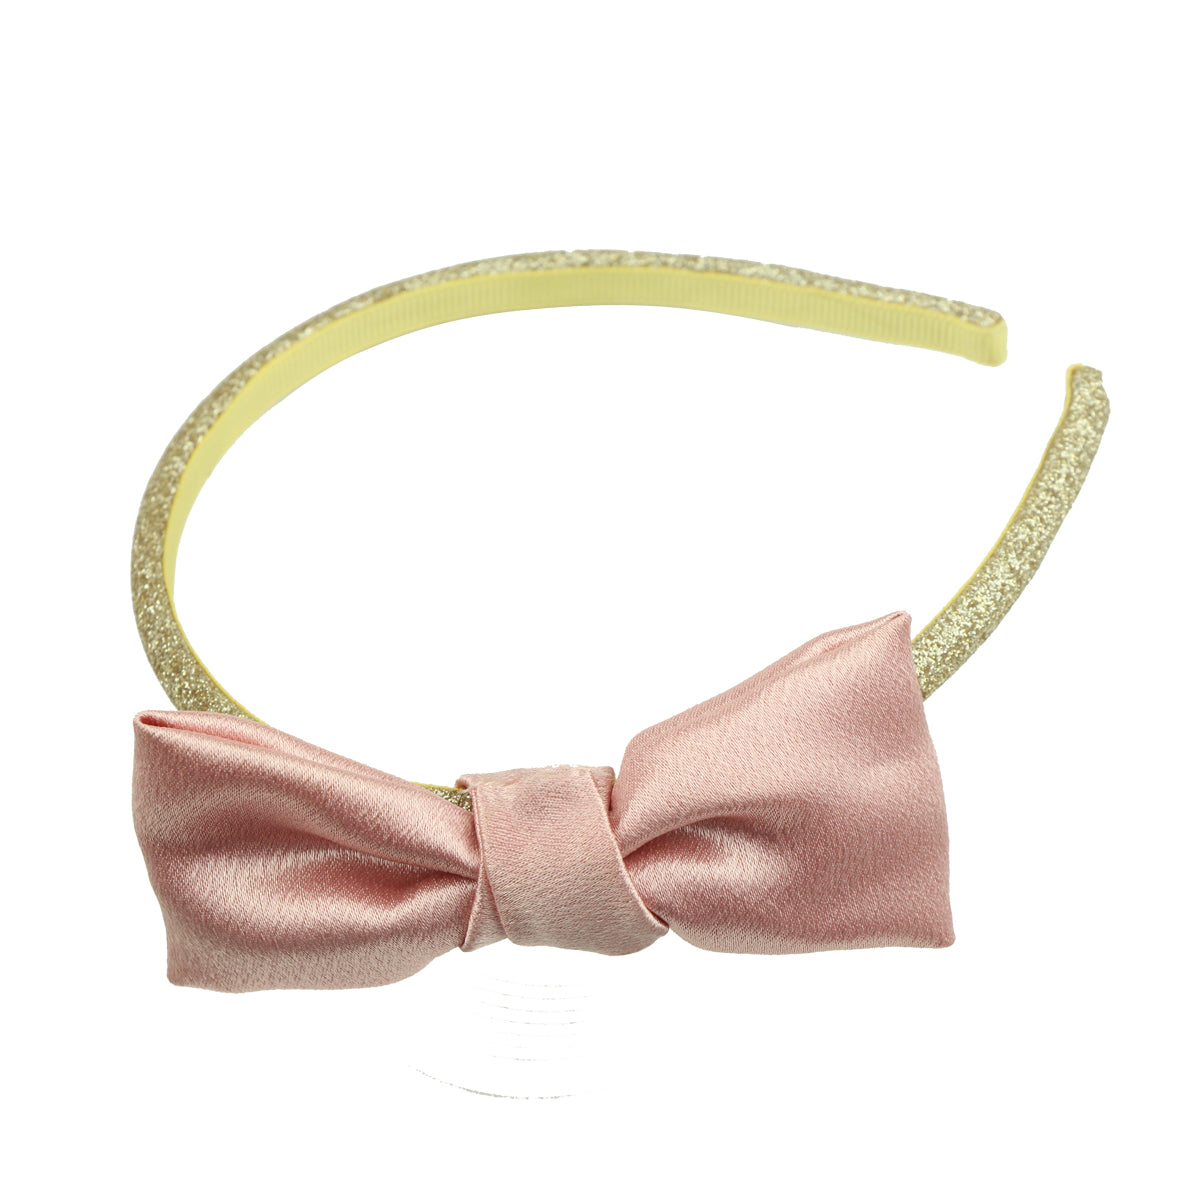 garment satin ribbon bow hair headband vintage stylish quality girl hair bow accessory 6153